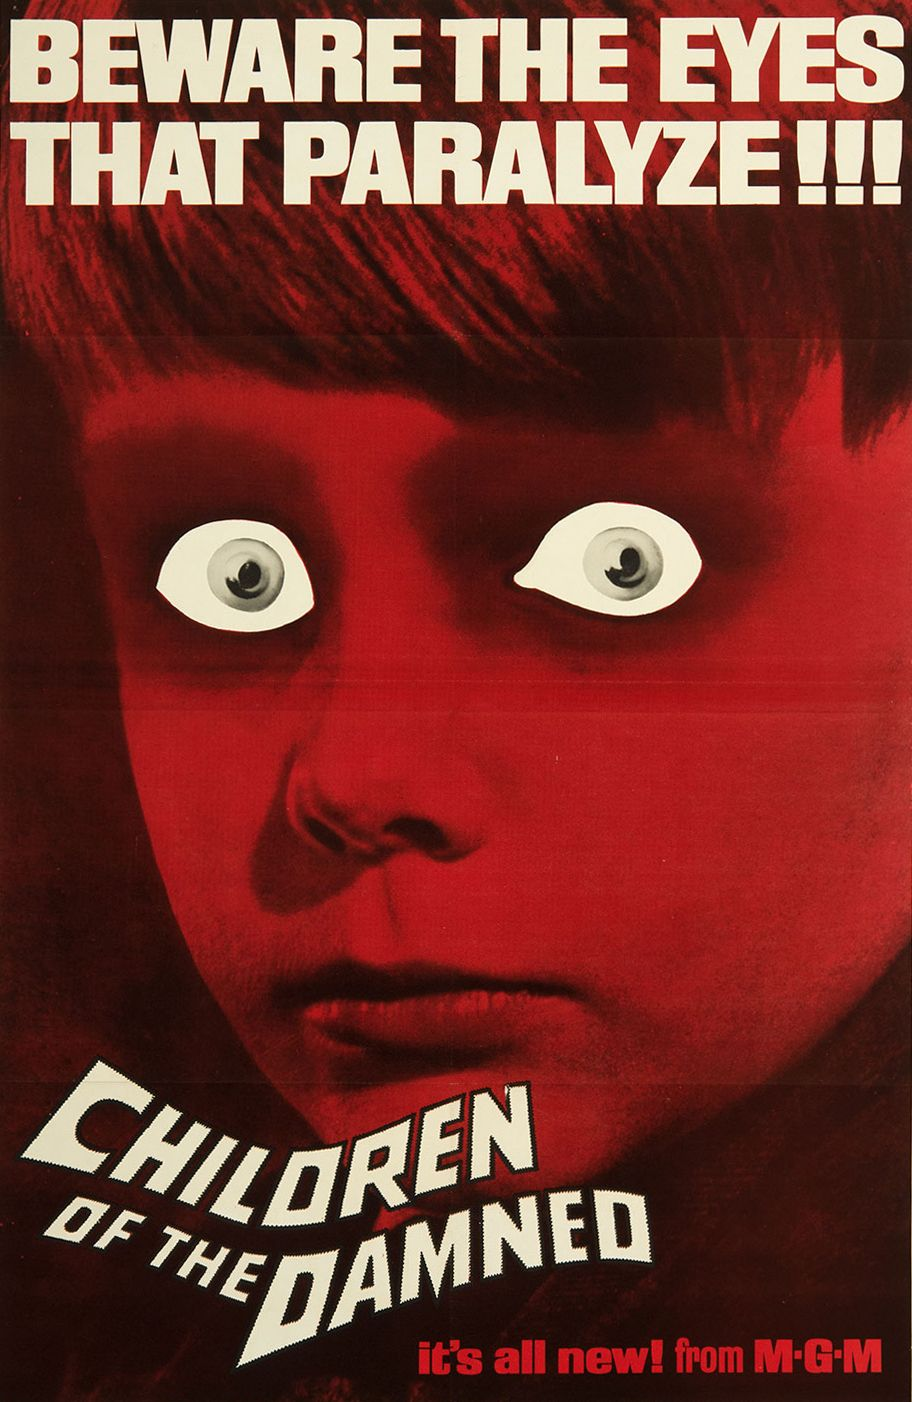 The 50 Greatest Horror Movie Posters Of All Time